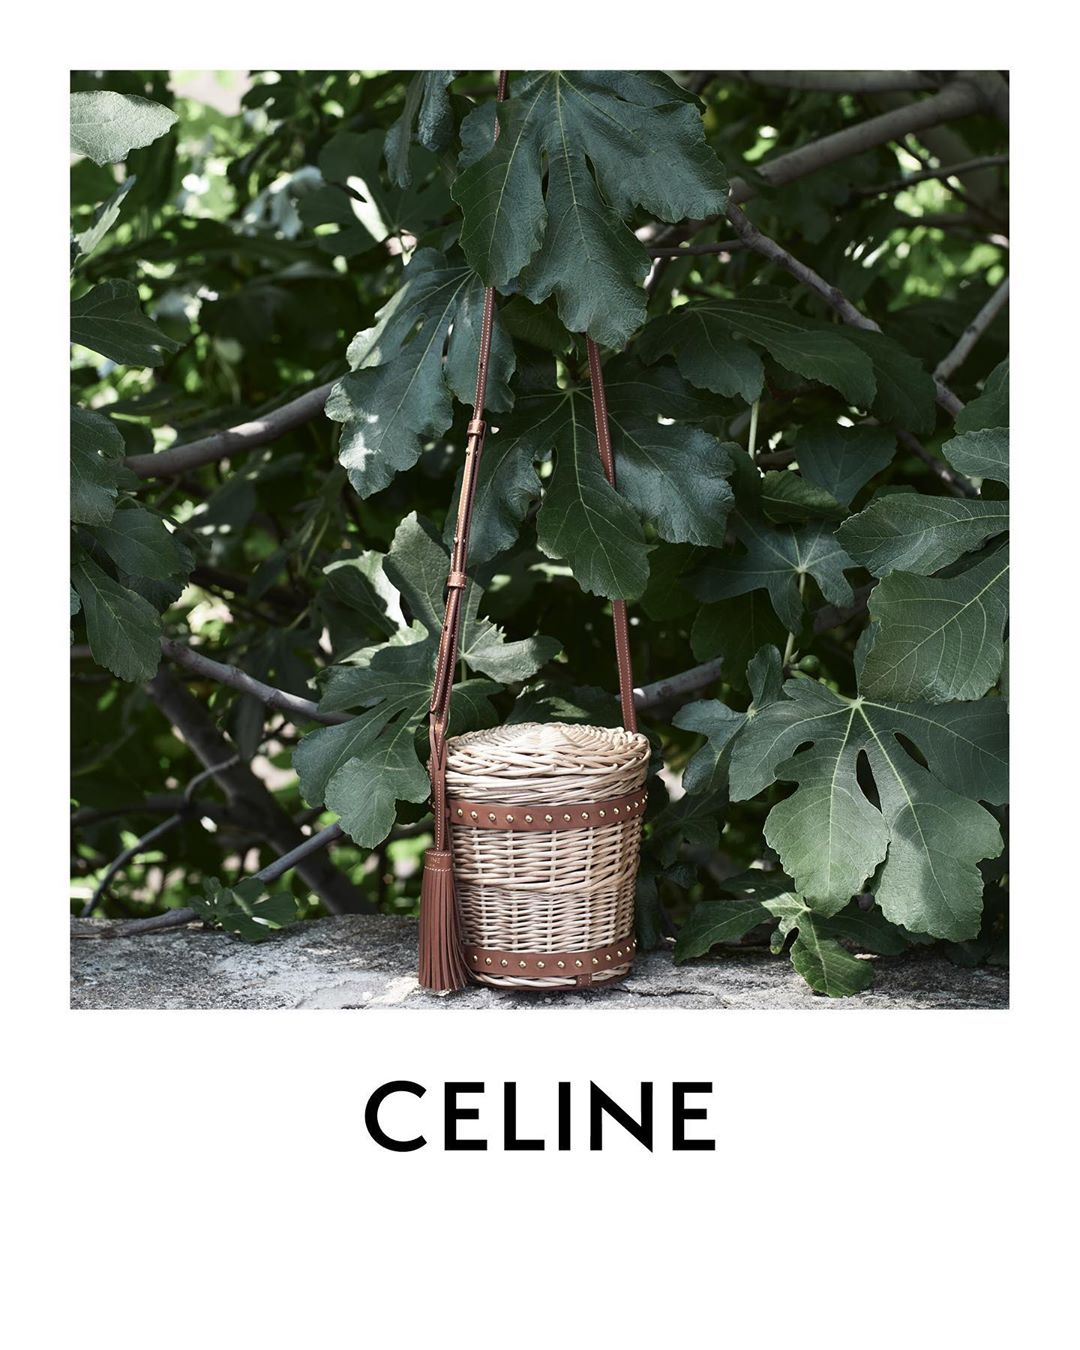 Celine Fall 2020 Ad Campaign with Essoye Mombot Photos